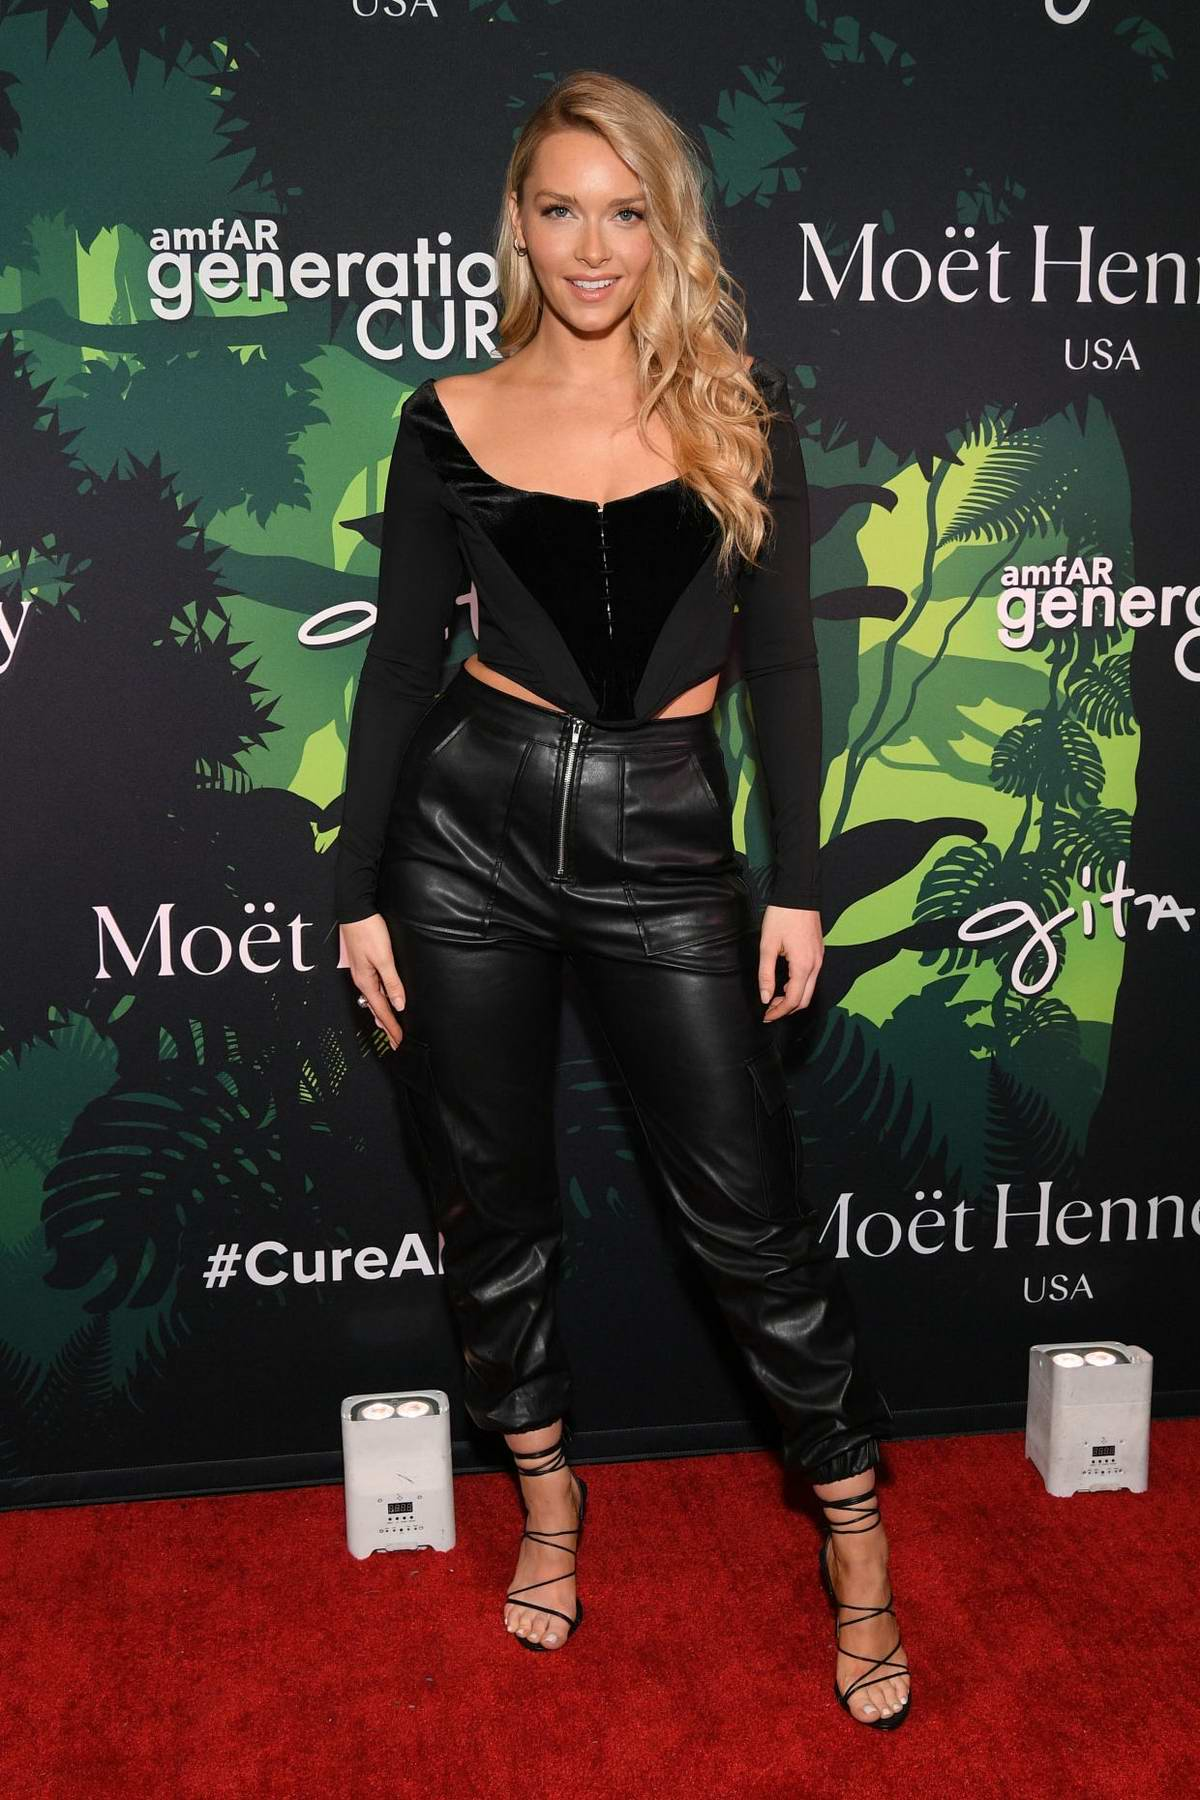 Camille Kostek attends the amfAR generationCURE Holiday Party in New York City